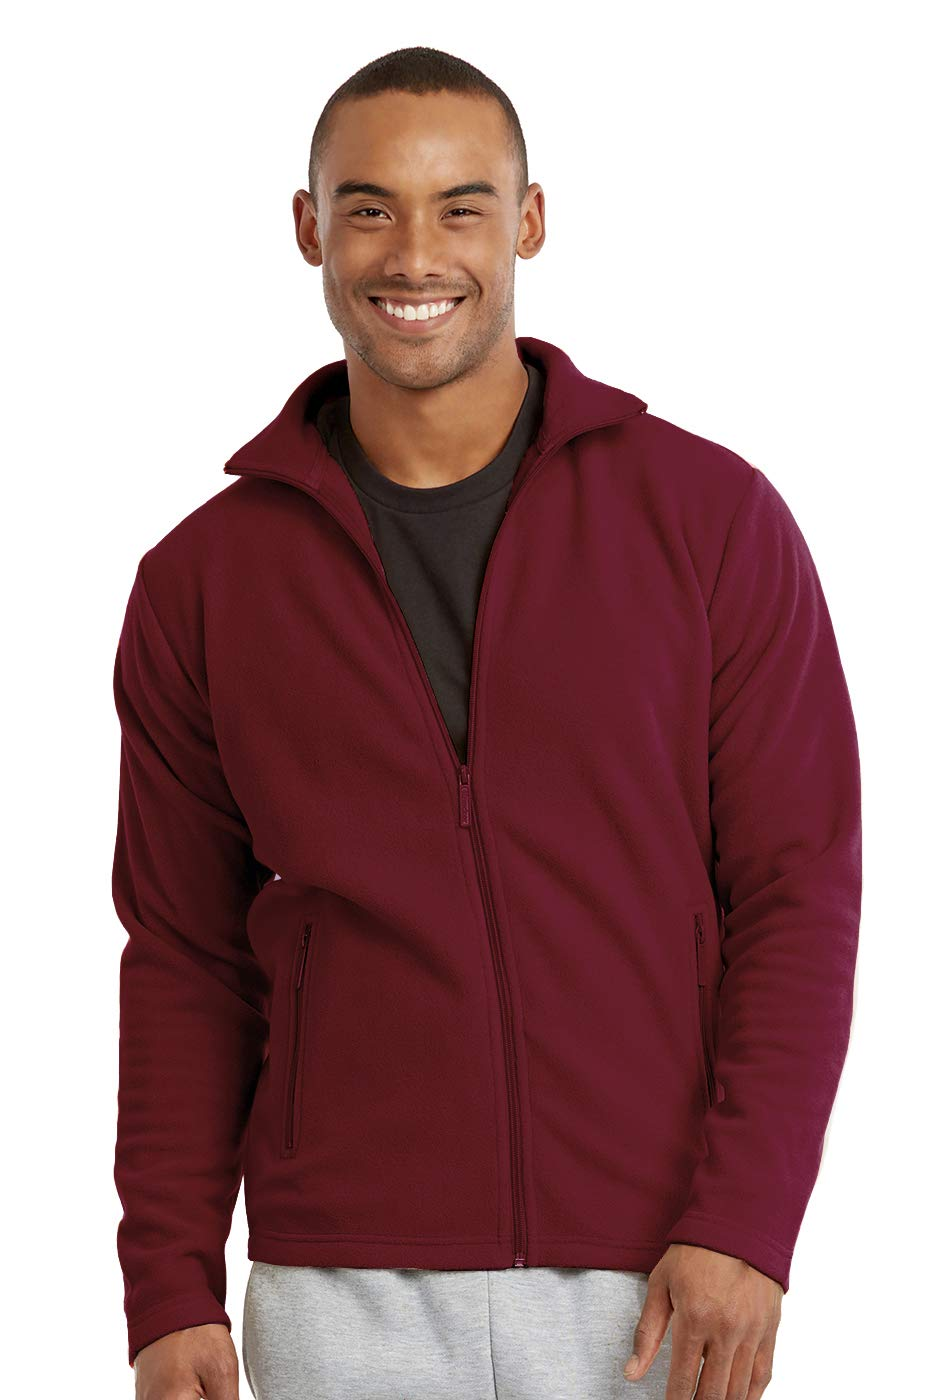 Men's Polar Fleece Zip Up Jacket